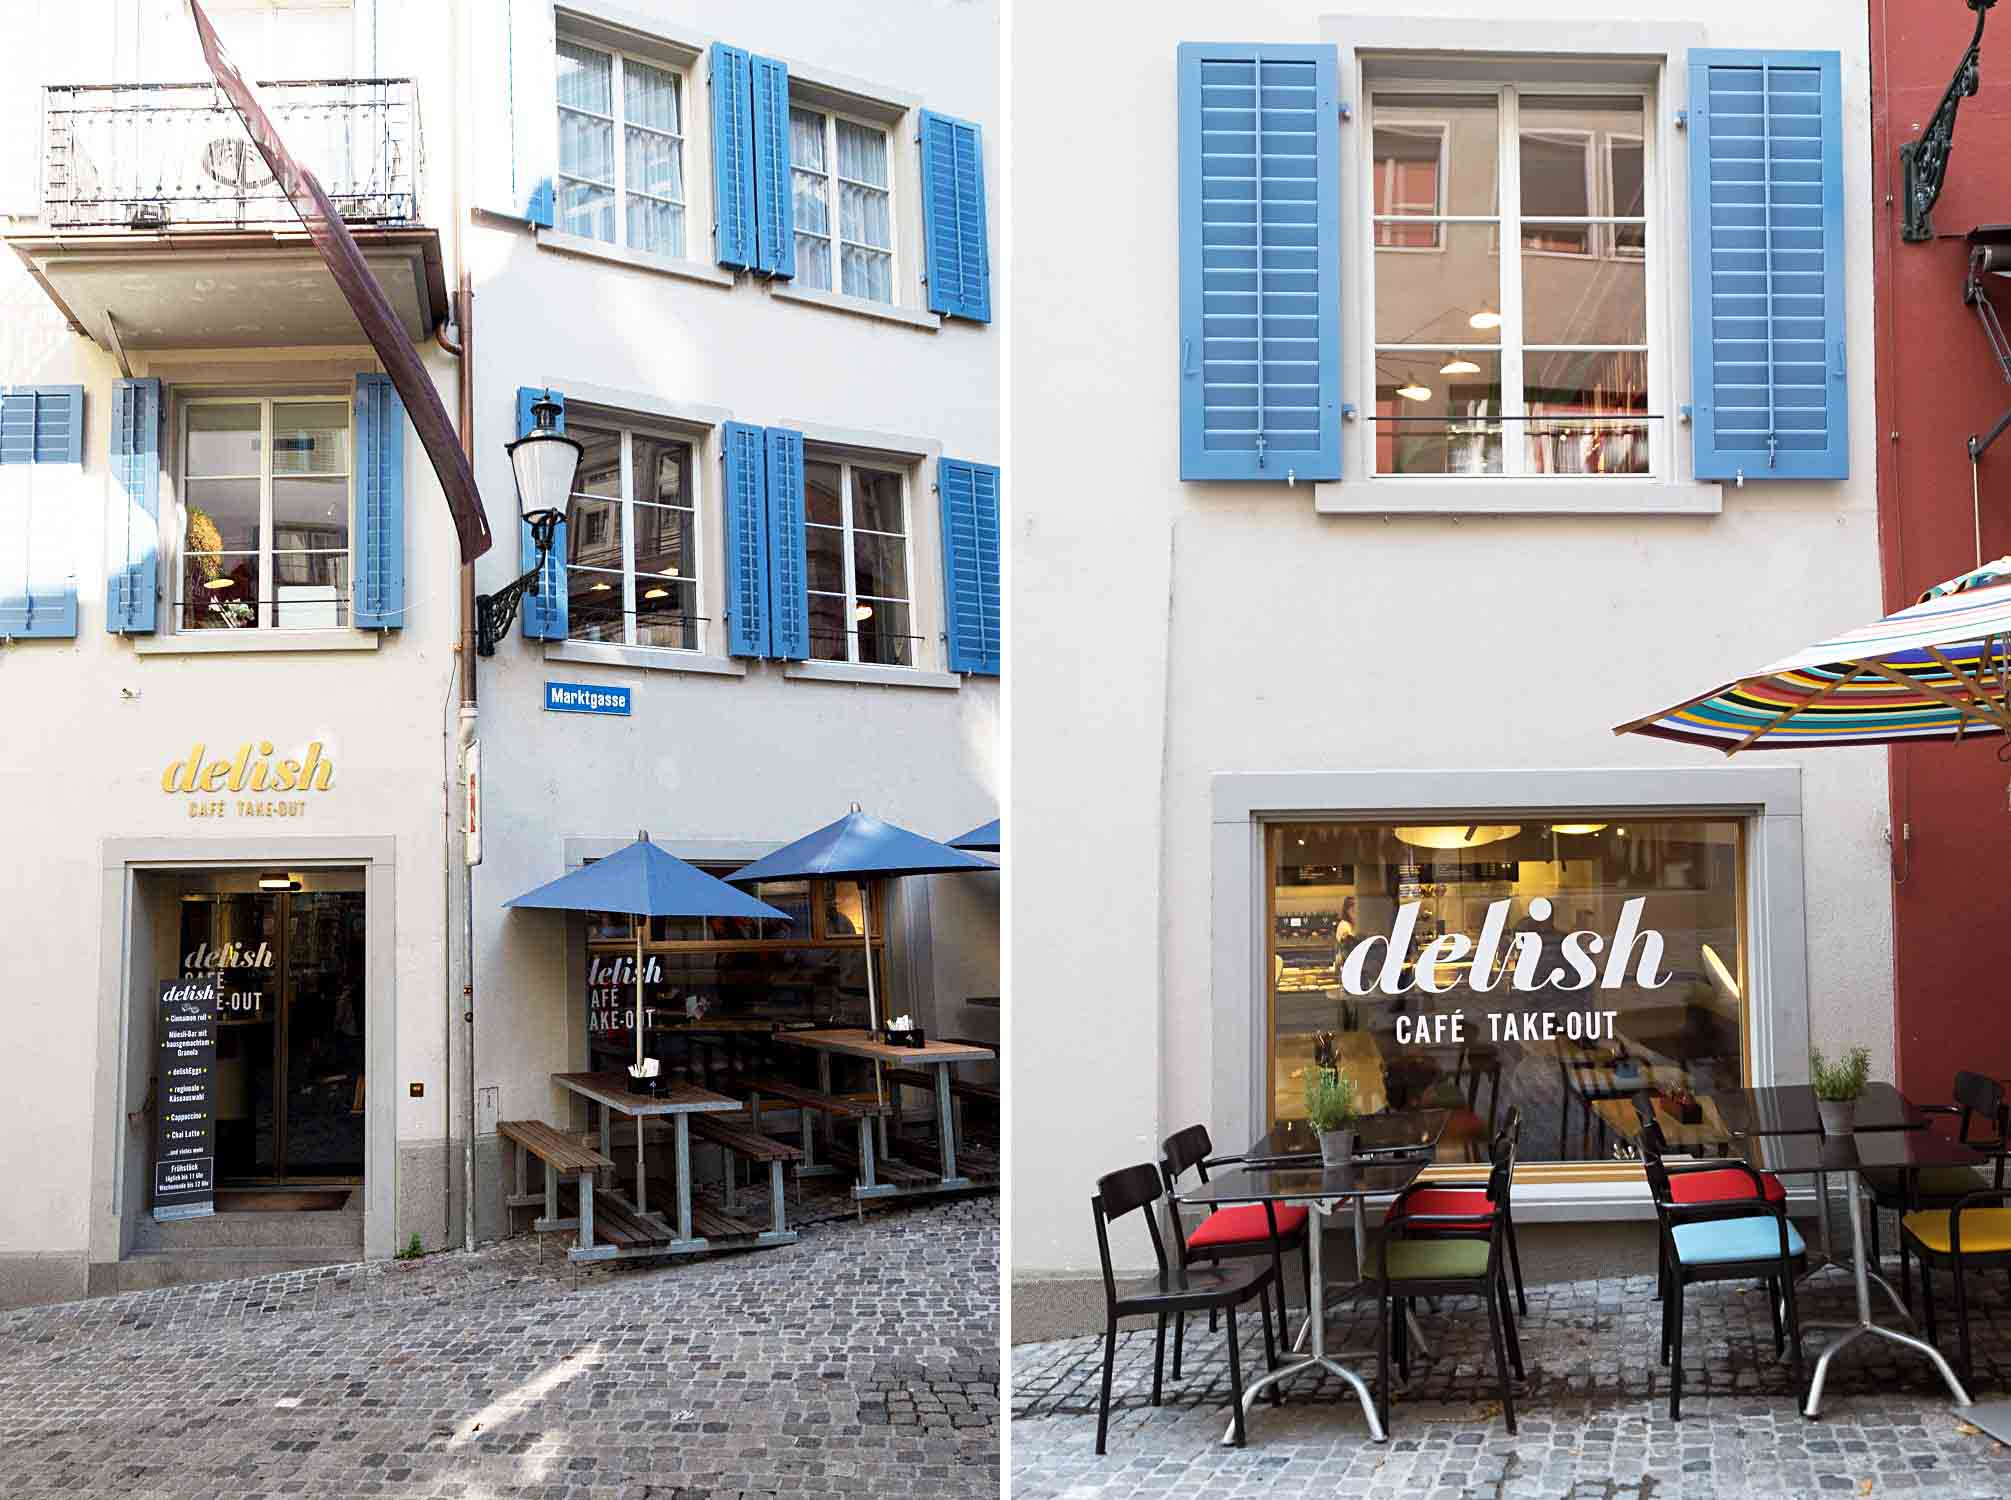 DELISH CAFÉ AND DELI - Marktgasse Hotel is a boutique hotel housed in a historic townhouse in the district of Niederdorf in Zurich, Switzerland